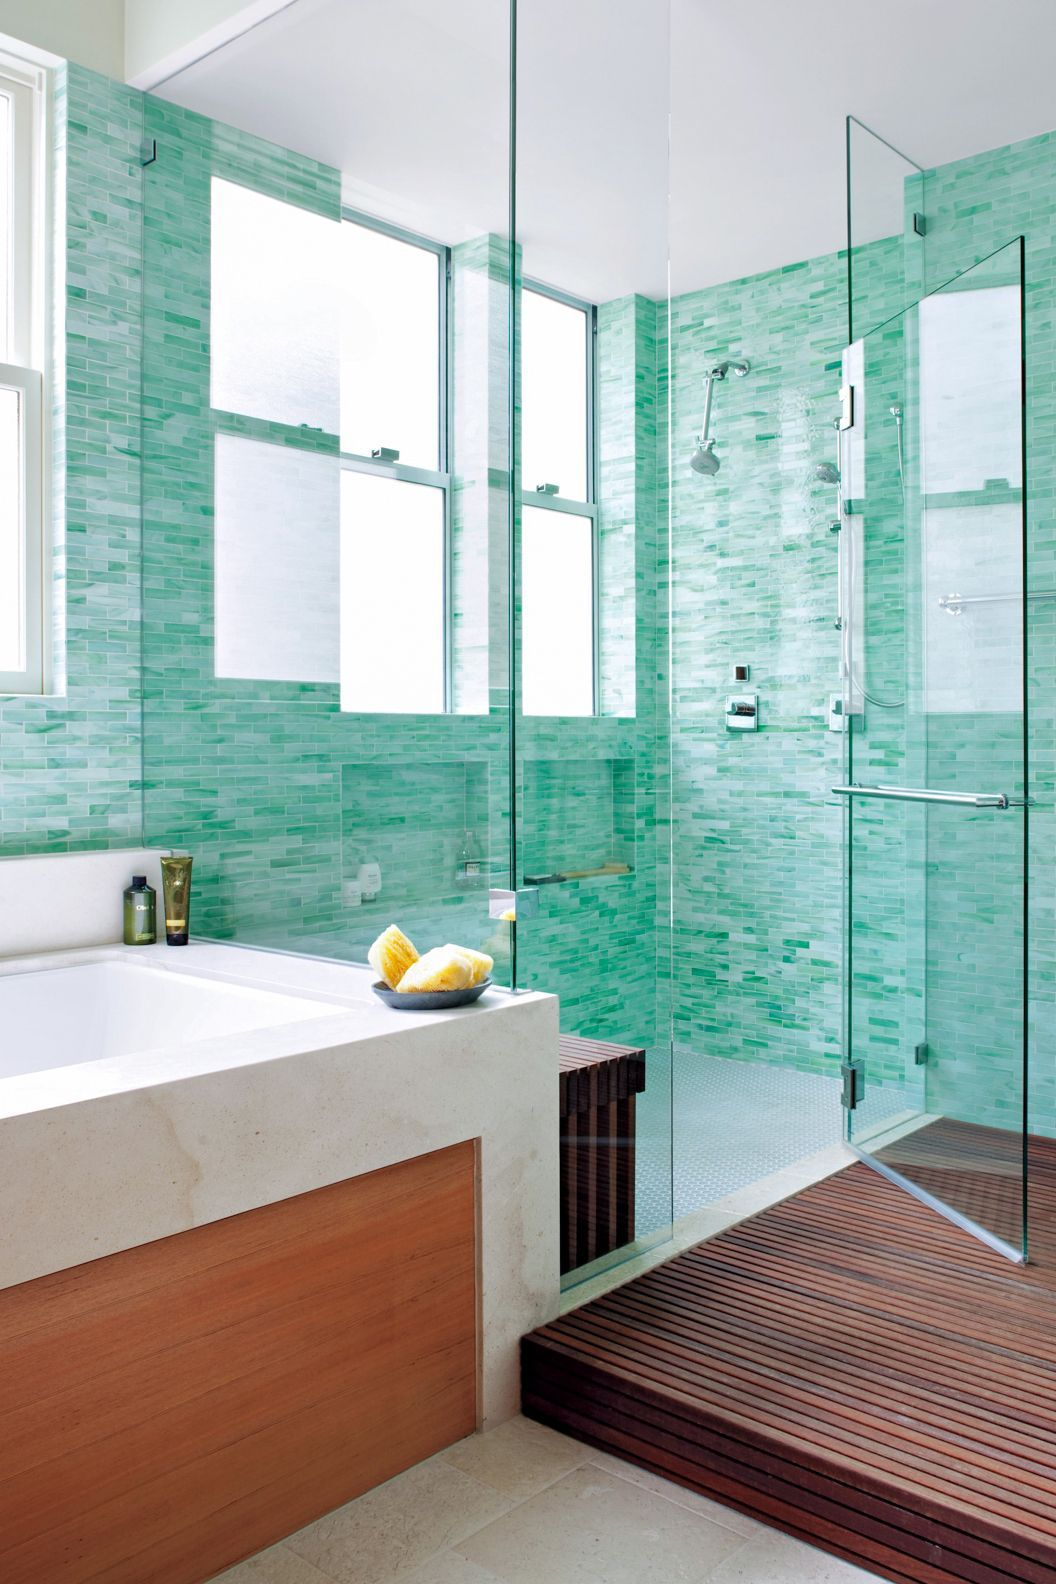 22 Beautiful Bathroom Shower Ideas For Every Style In 2021 Bathrooms Design Decor